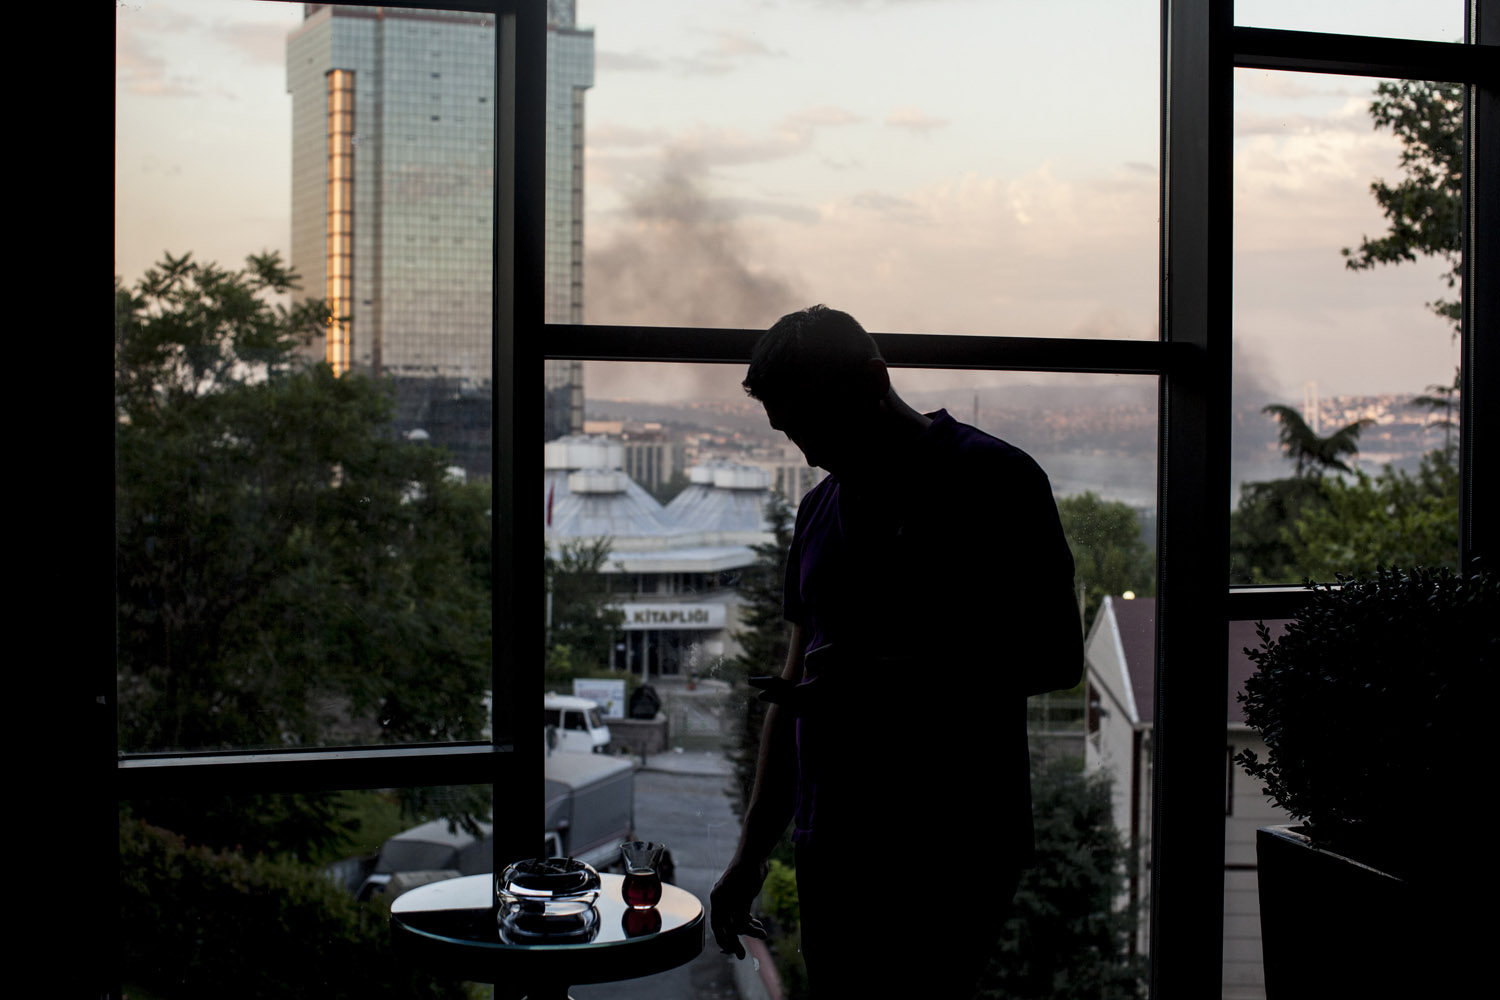 A man takes tea at a hotel balcony that overlooks Gezi park and the Bosphorus sea. The smoke below is from the fires lit by anti-government protesters in the Besiktas neighborhood of Istanbul.